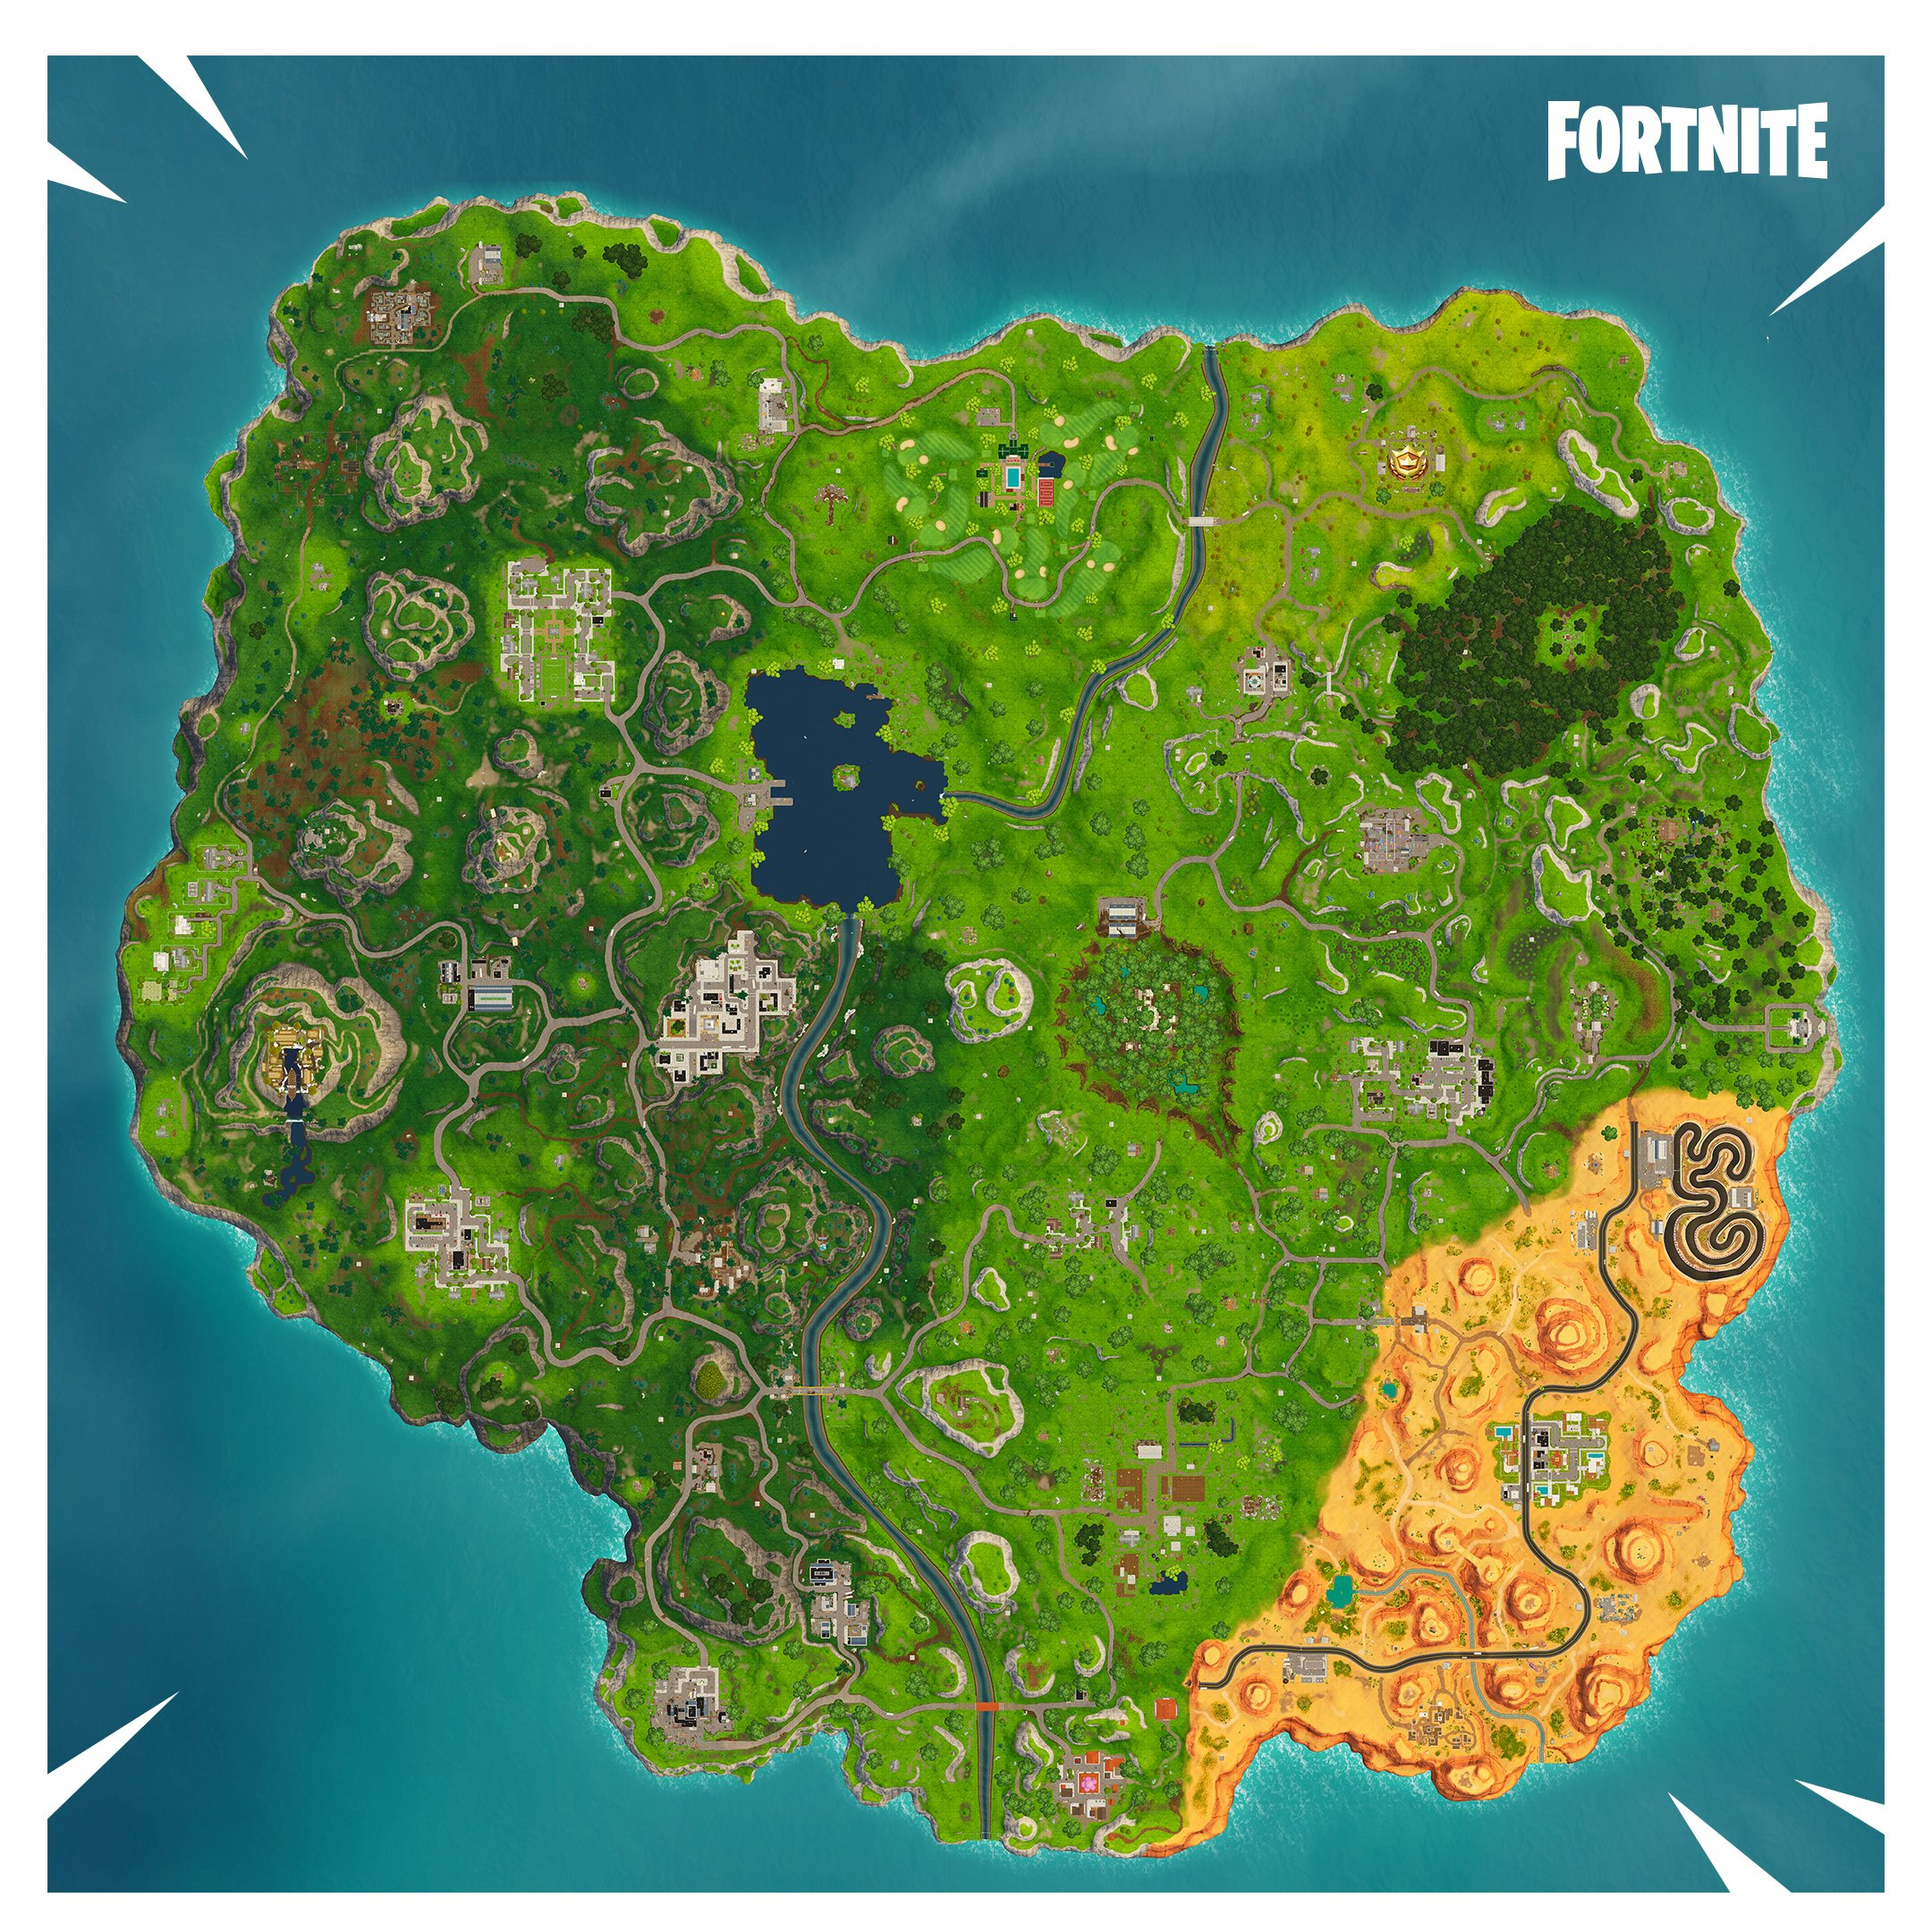 head up to risky reels to find the sixth road trip star - leviathan head fortnite